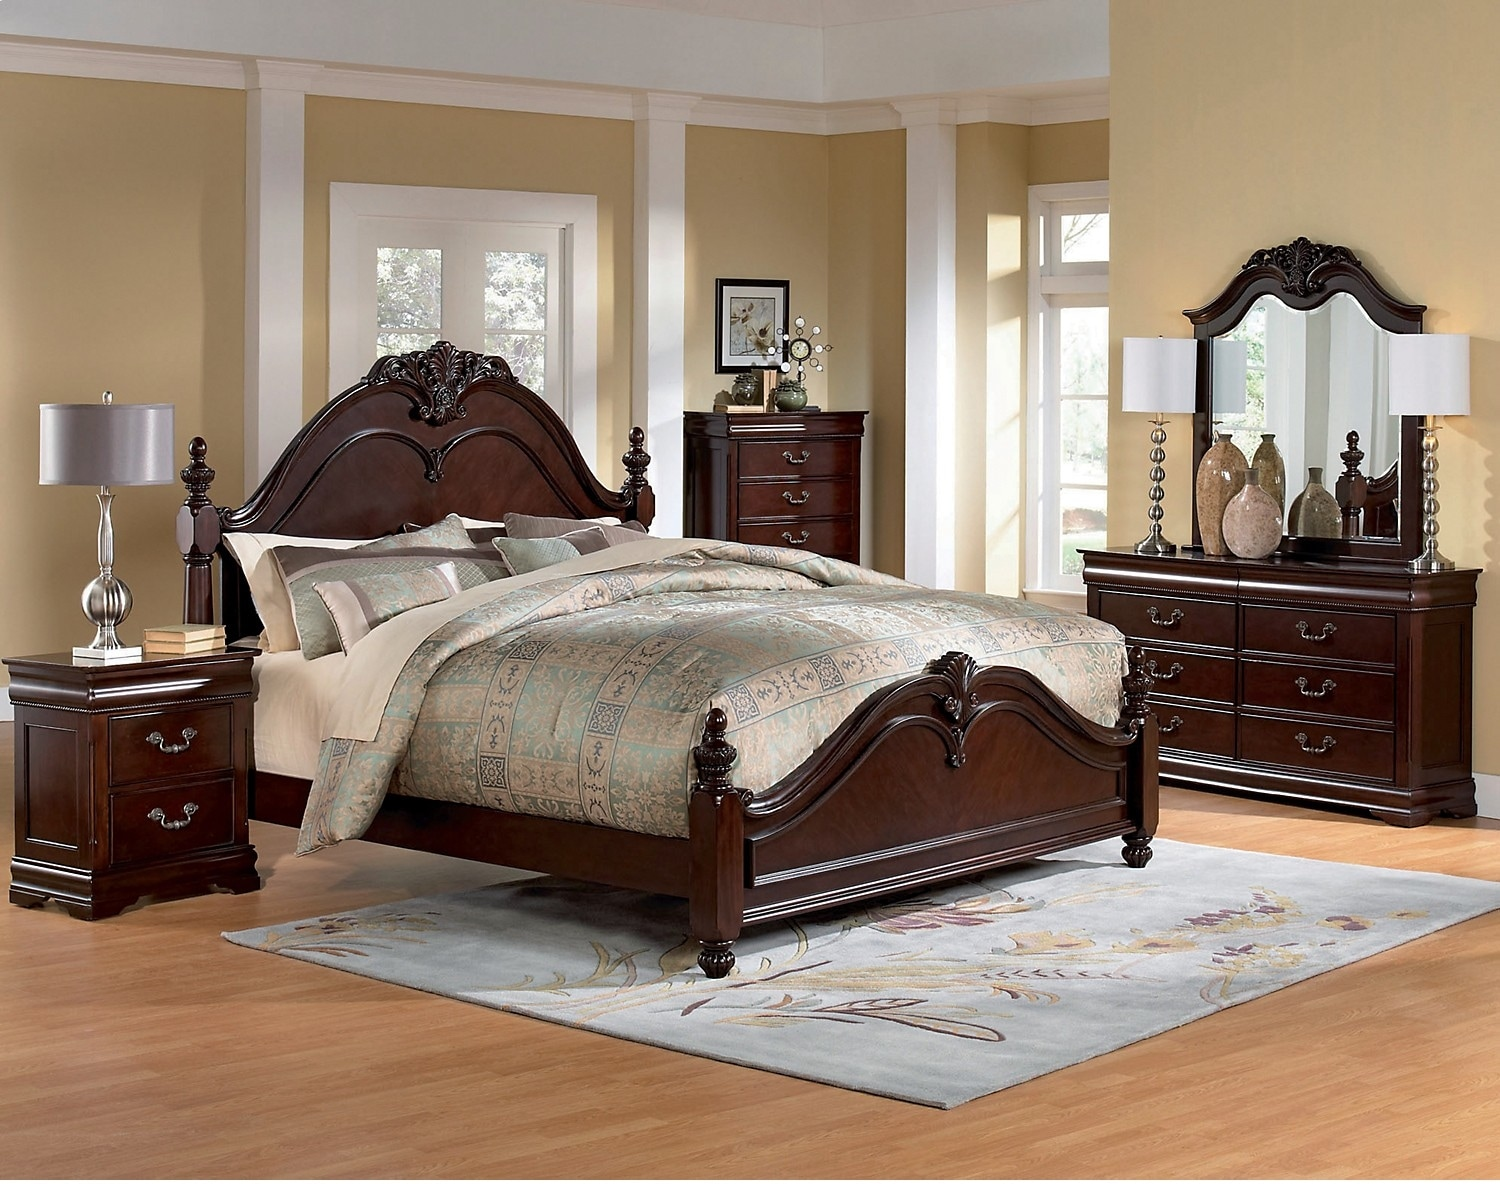 Bedroom Furniture Westchester 6 Piece Queen Bedroom Set